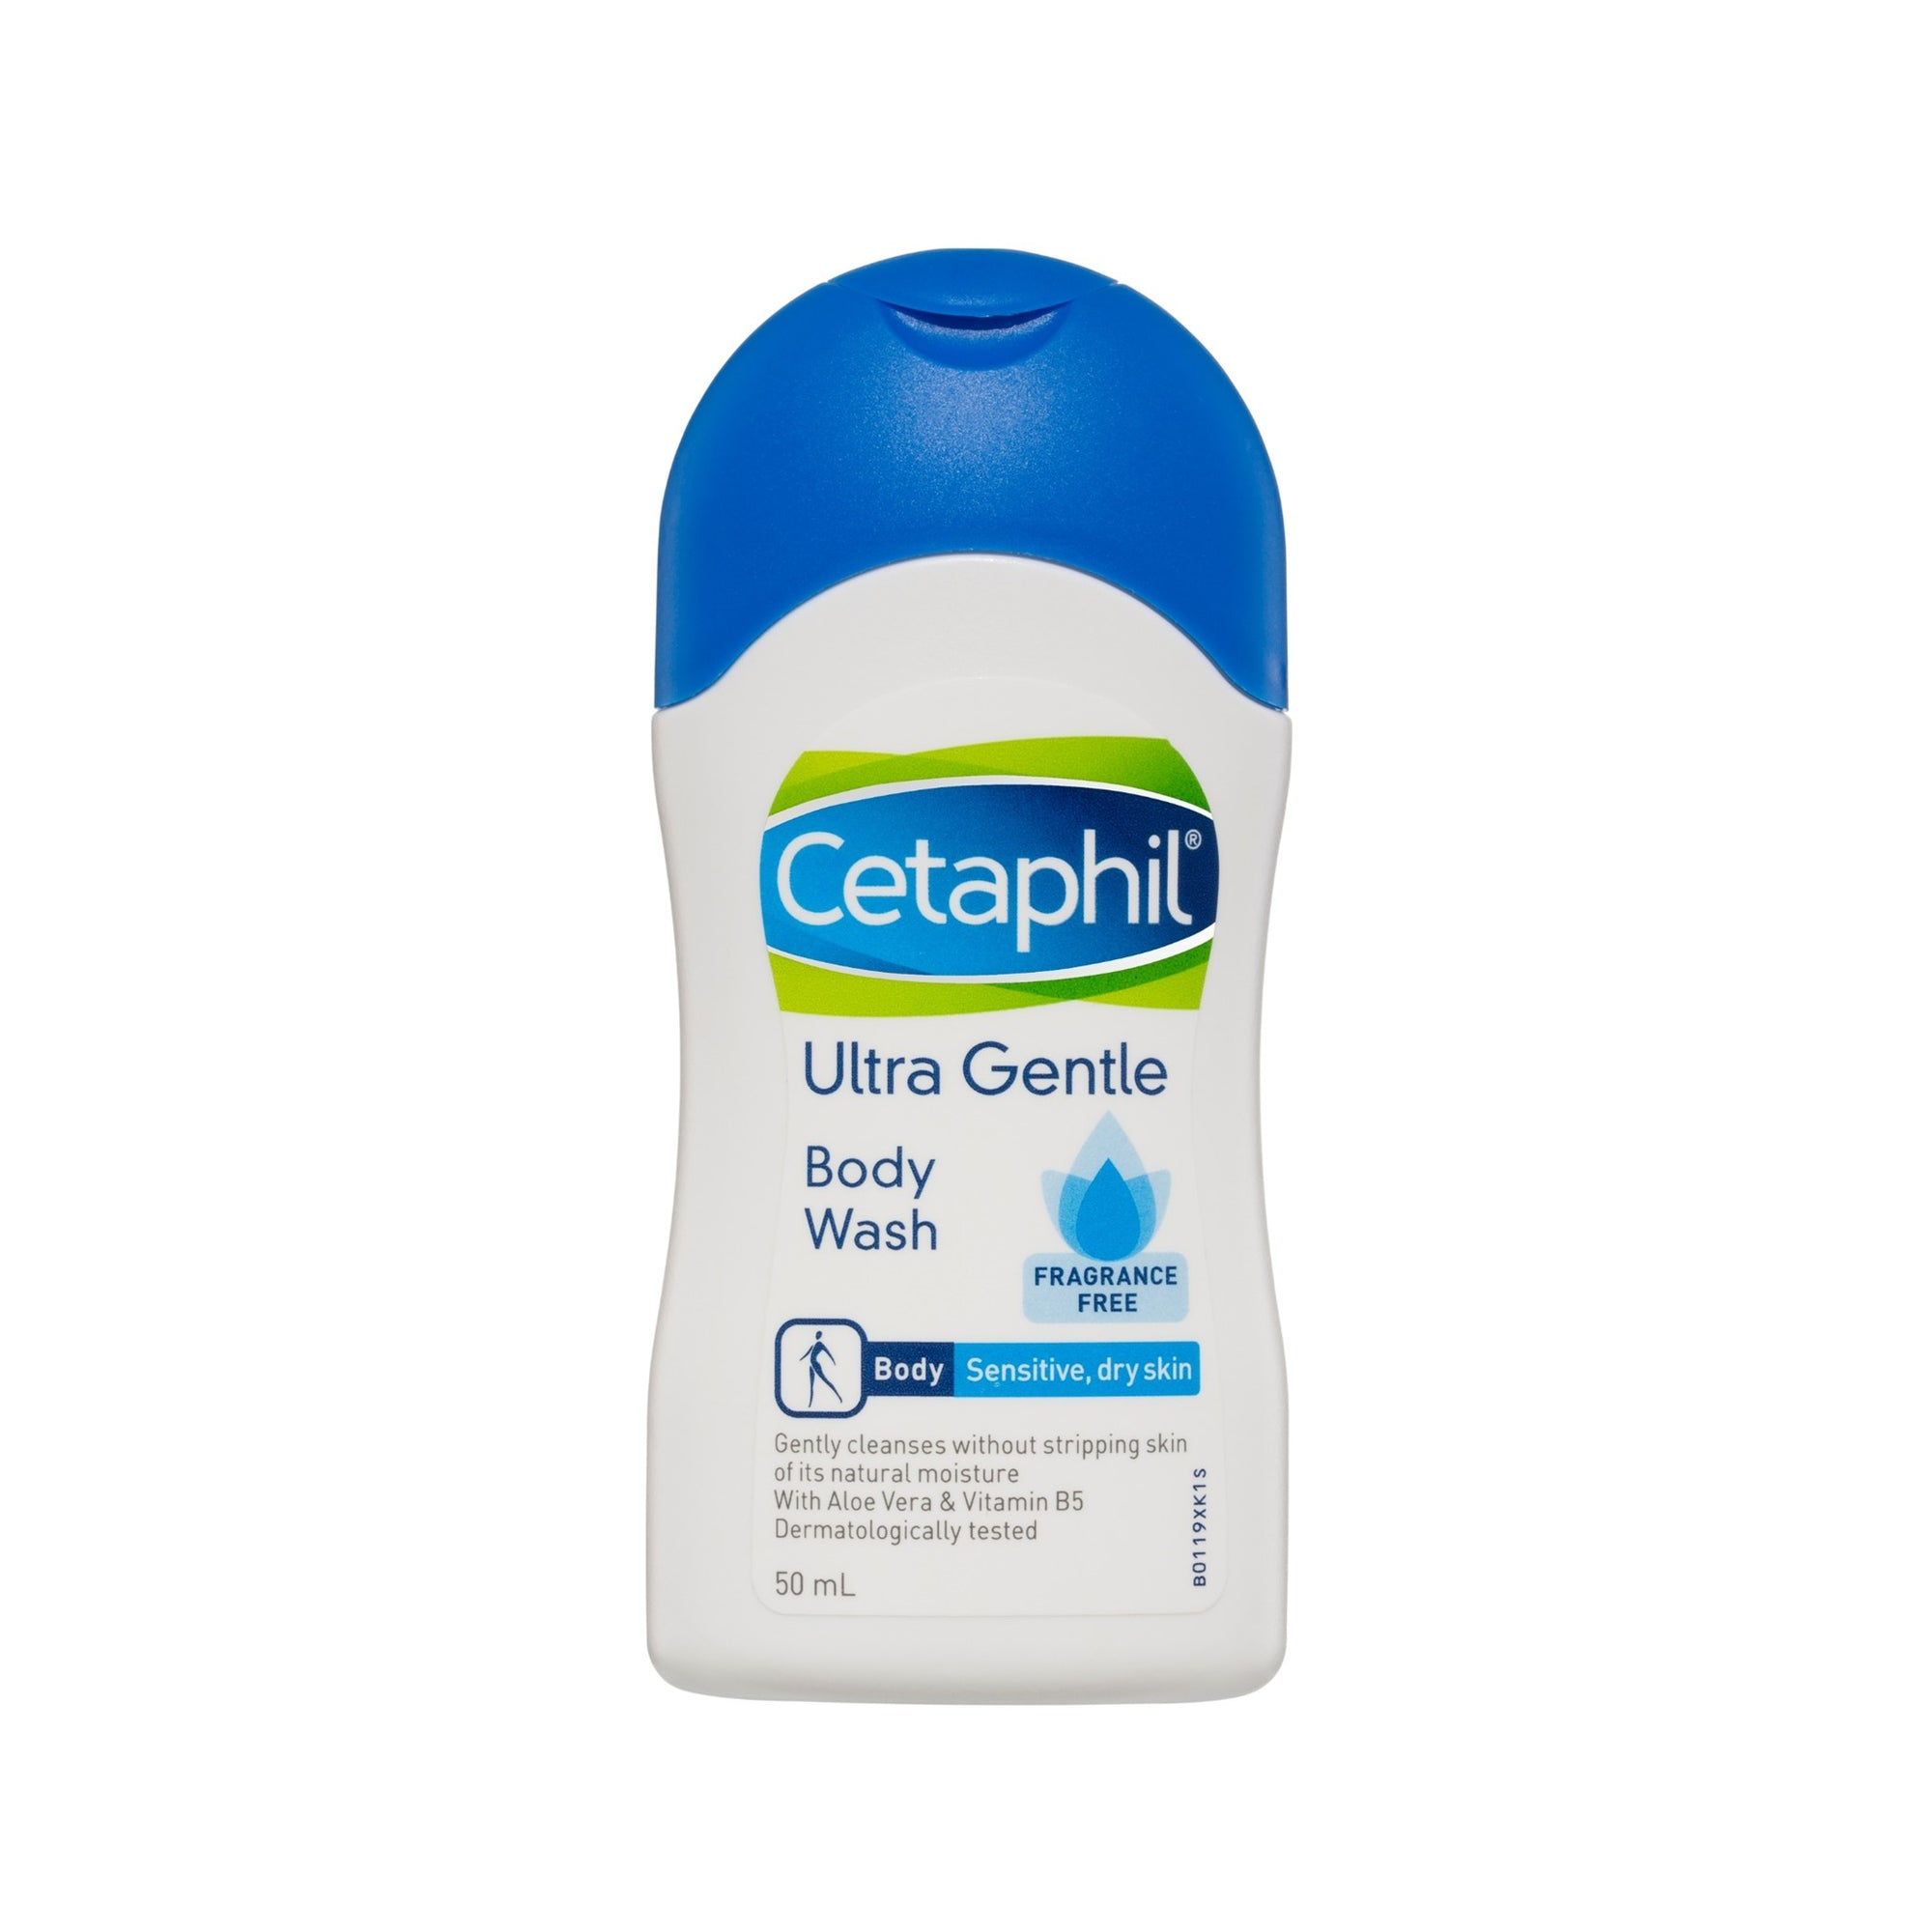 Cetaphil Body Wash Ultra Gentle Fragrance Free 50Ml